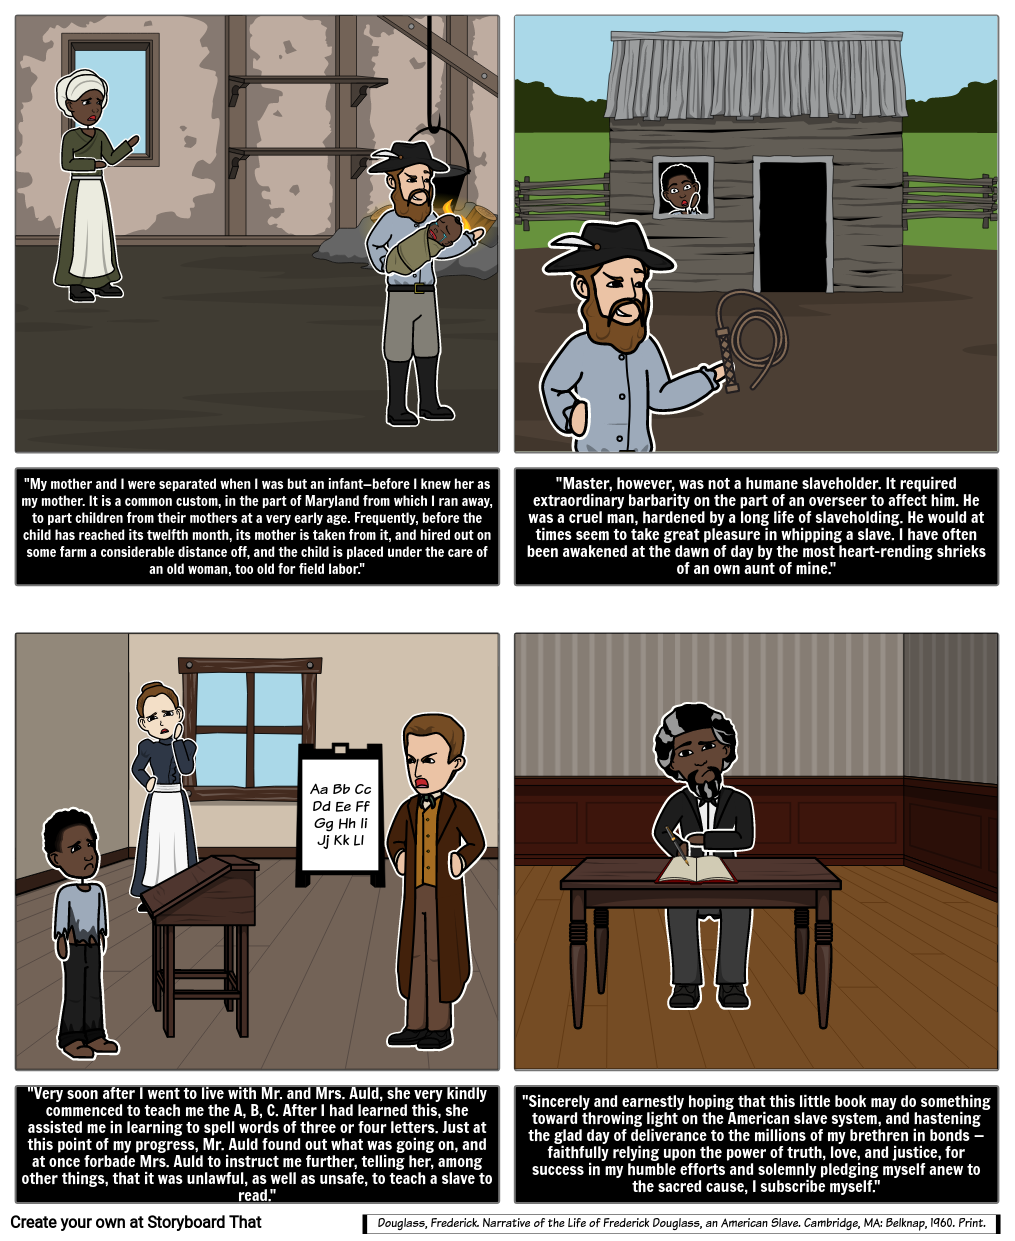 Perspectives of the Slave Trade